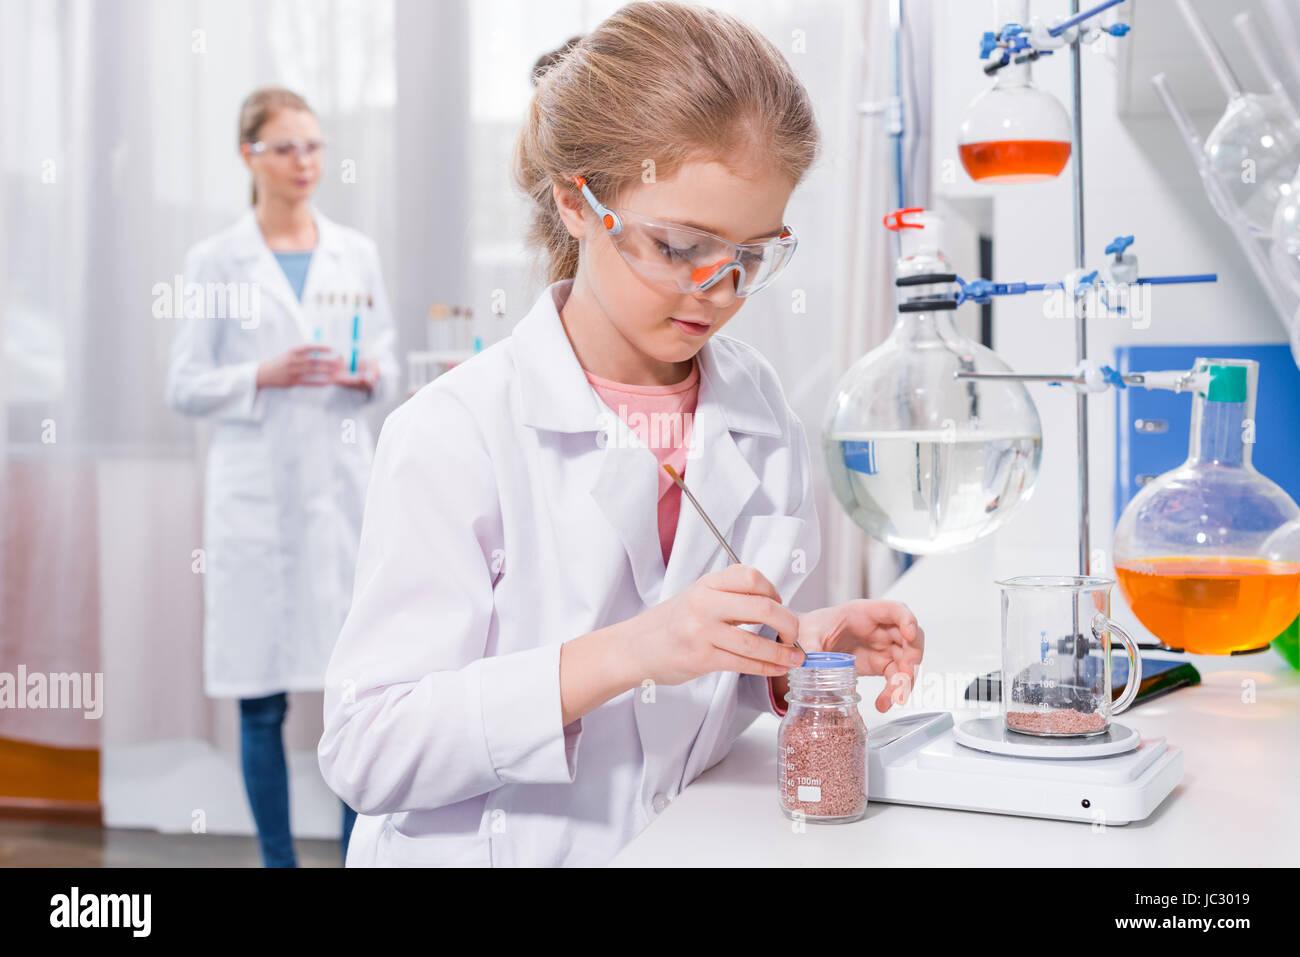 Little girl scientist in white coat making experiment in chemical ...